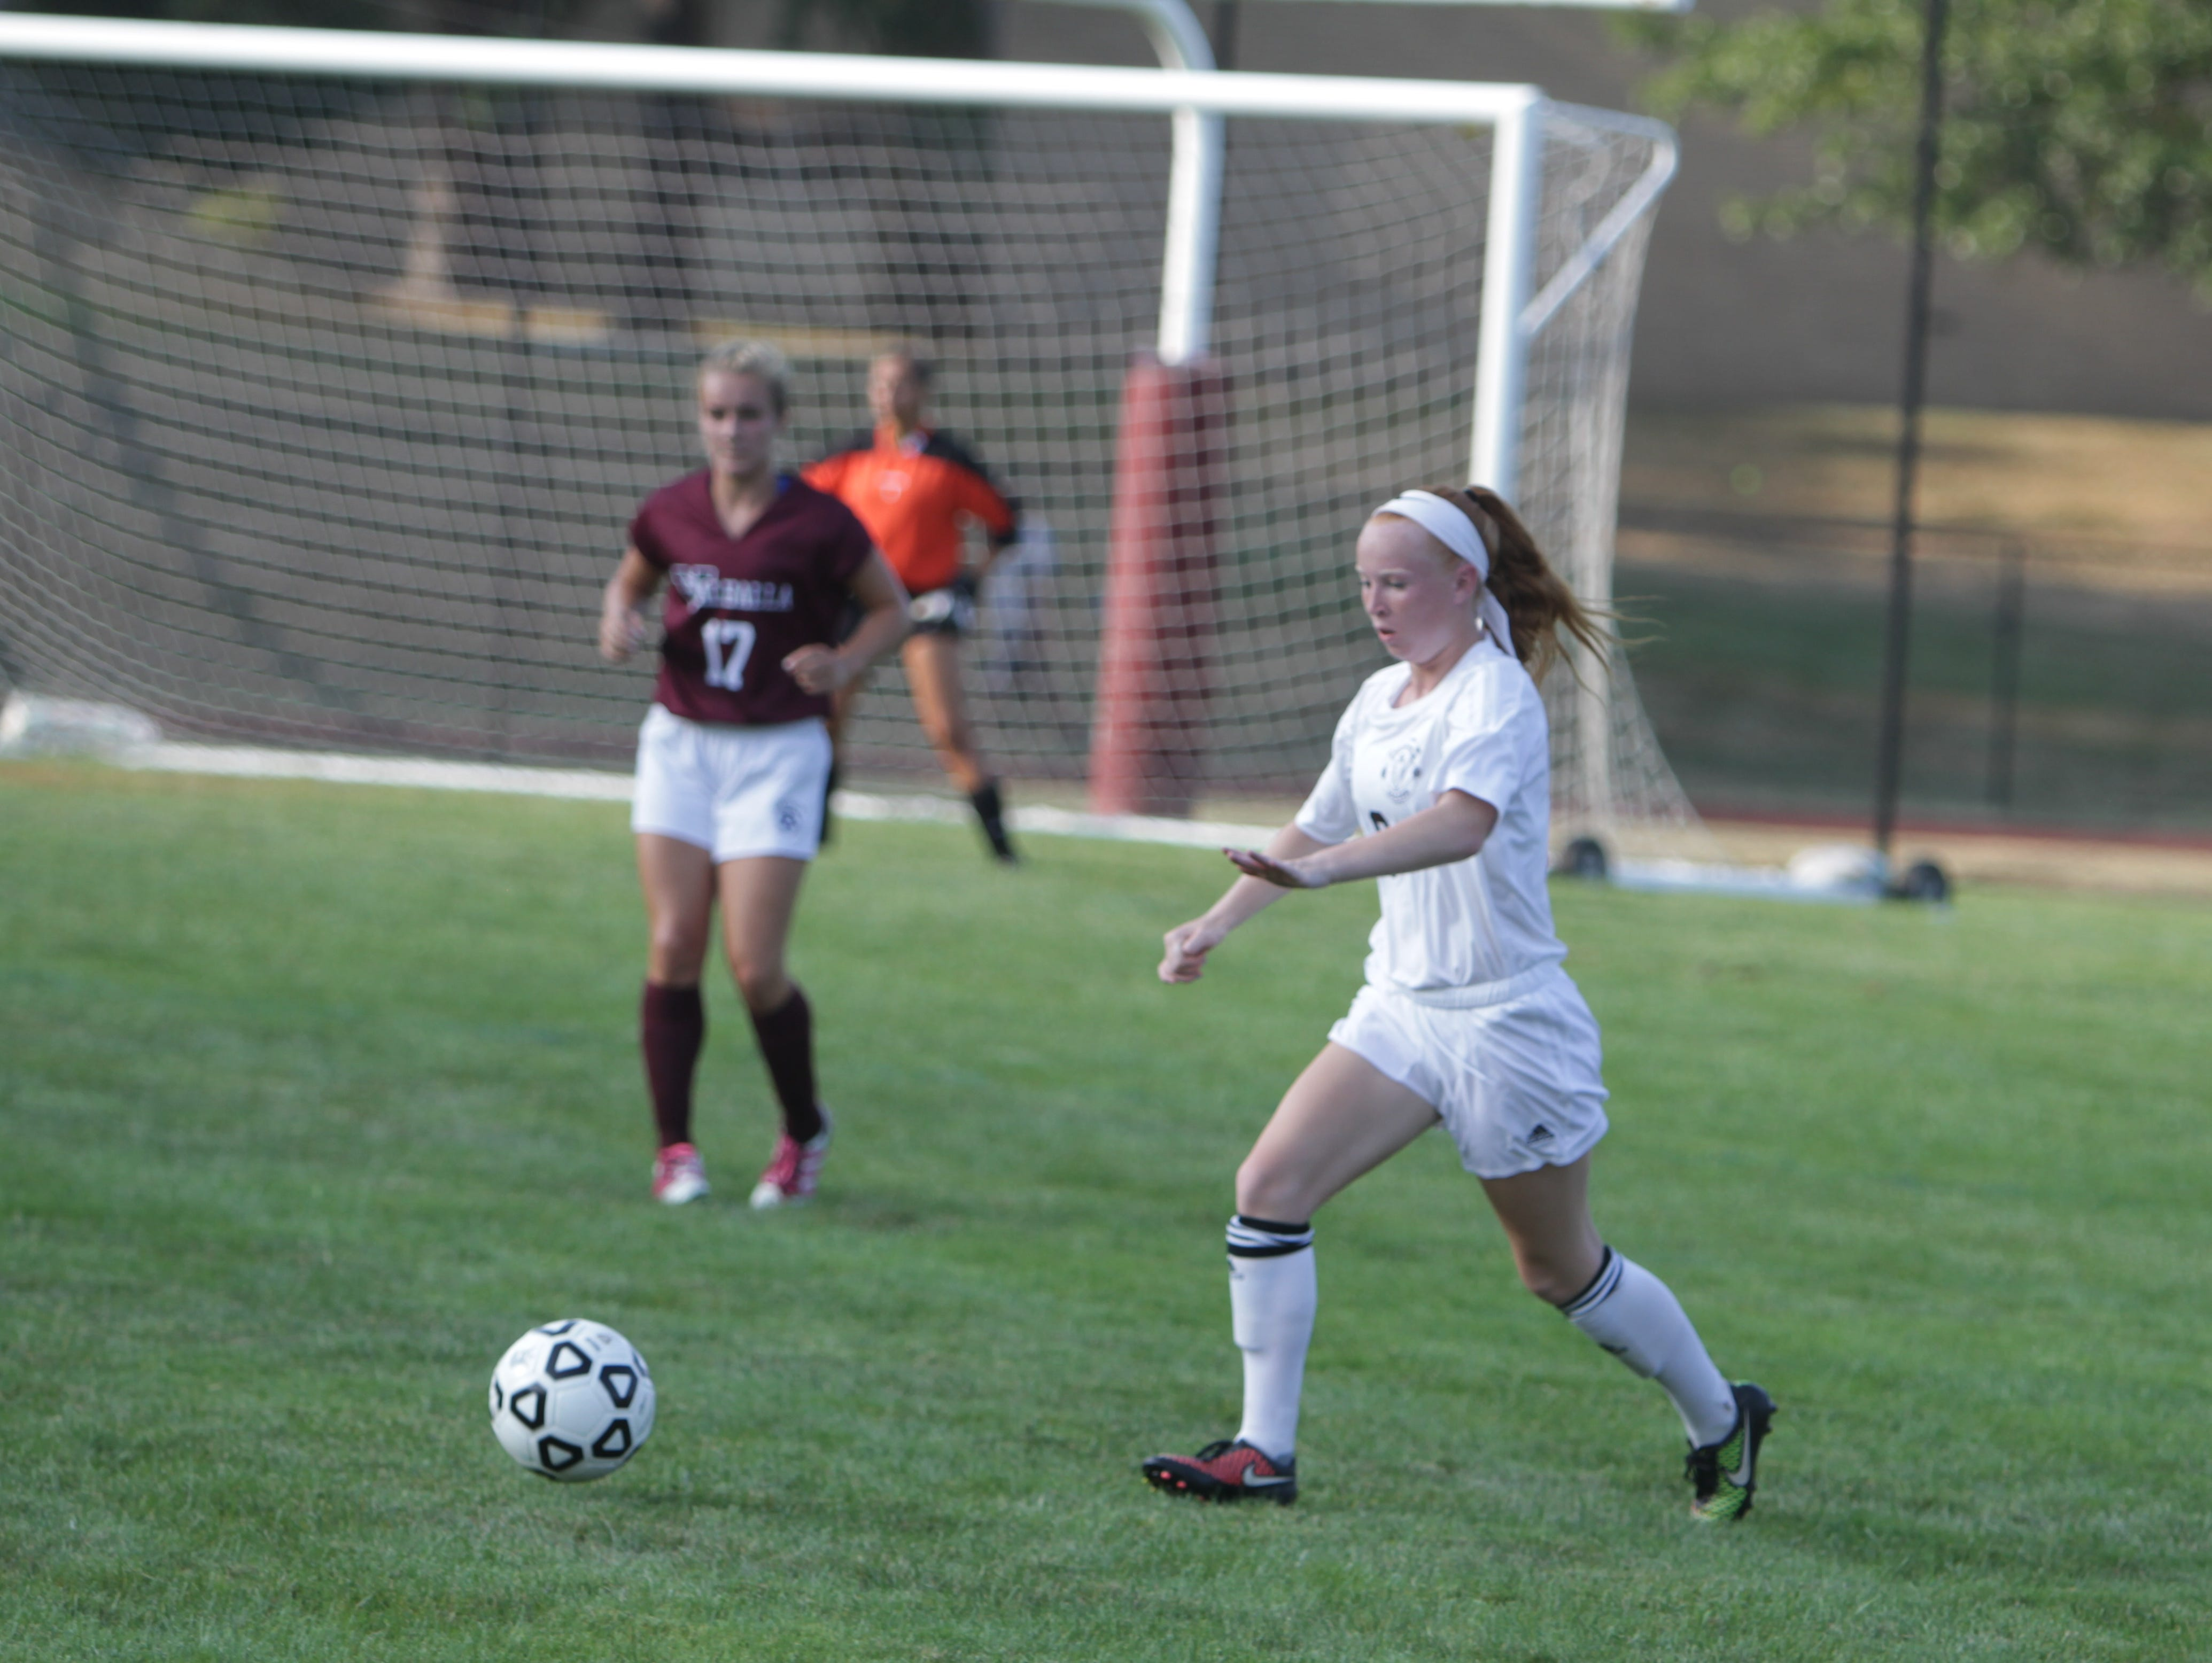 Albertus Magnus' Carly Clinton (white) controls the ball, with Valhalla's Kaylie Dymek (maroon) watching on, during a non-league game at Albertus Magnus High School on Tuesday, September 1st. Albertus Magnus won 1-0.